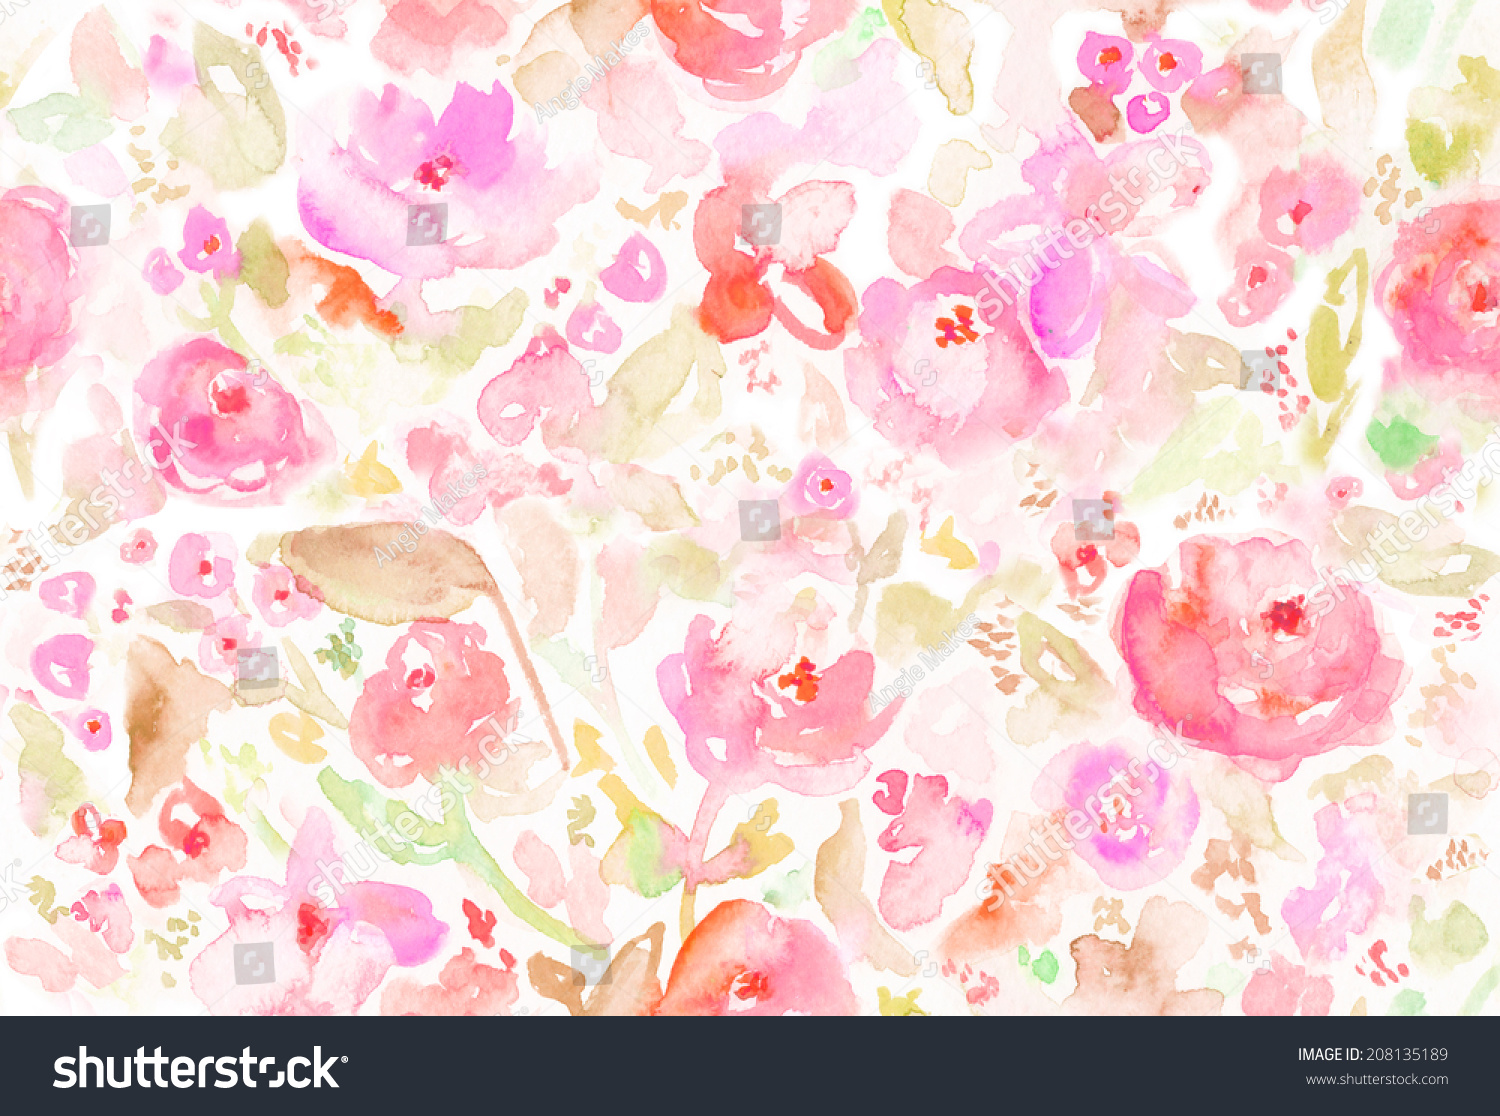 Modern Watercolor Floral Background Watercolor Background